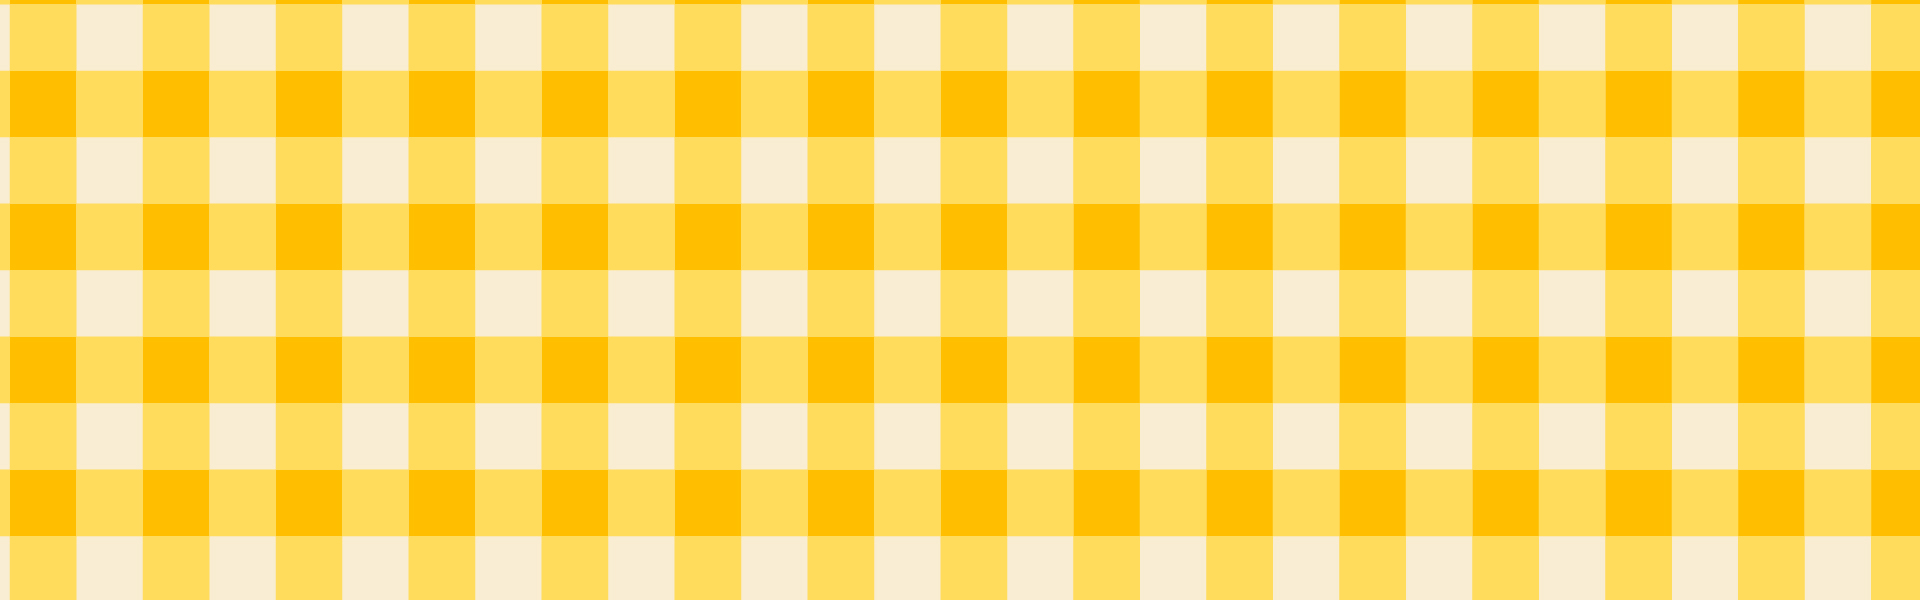 Yellow Checkered Background, Grid, Tablecloth, Yellow ...